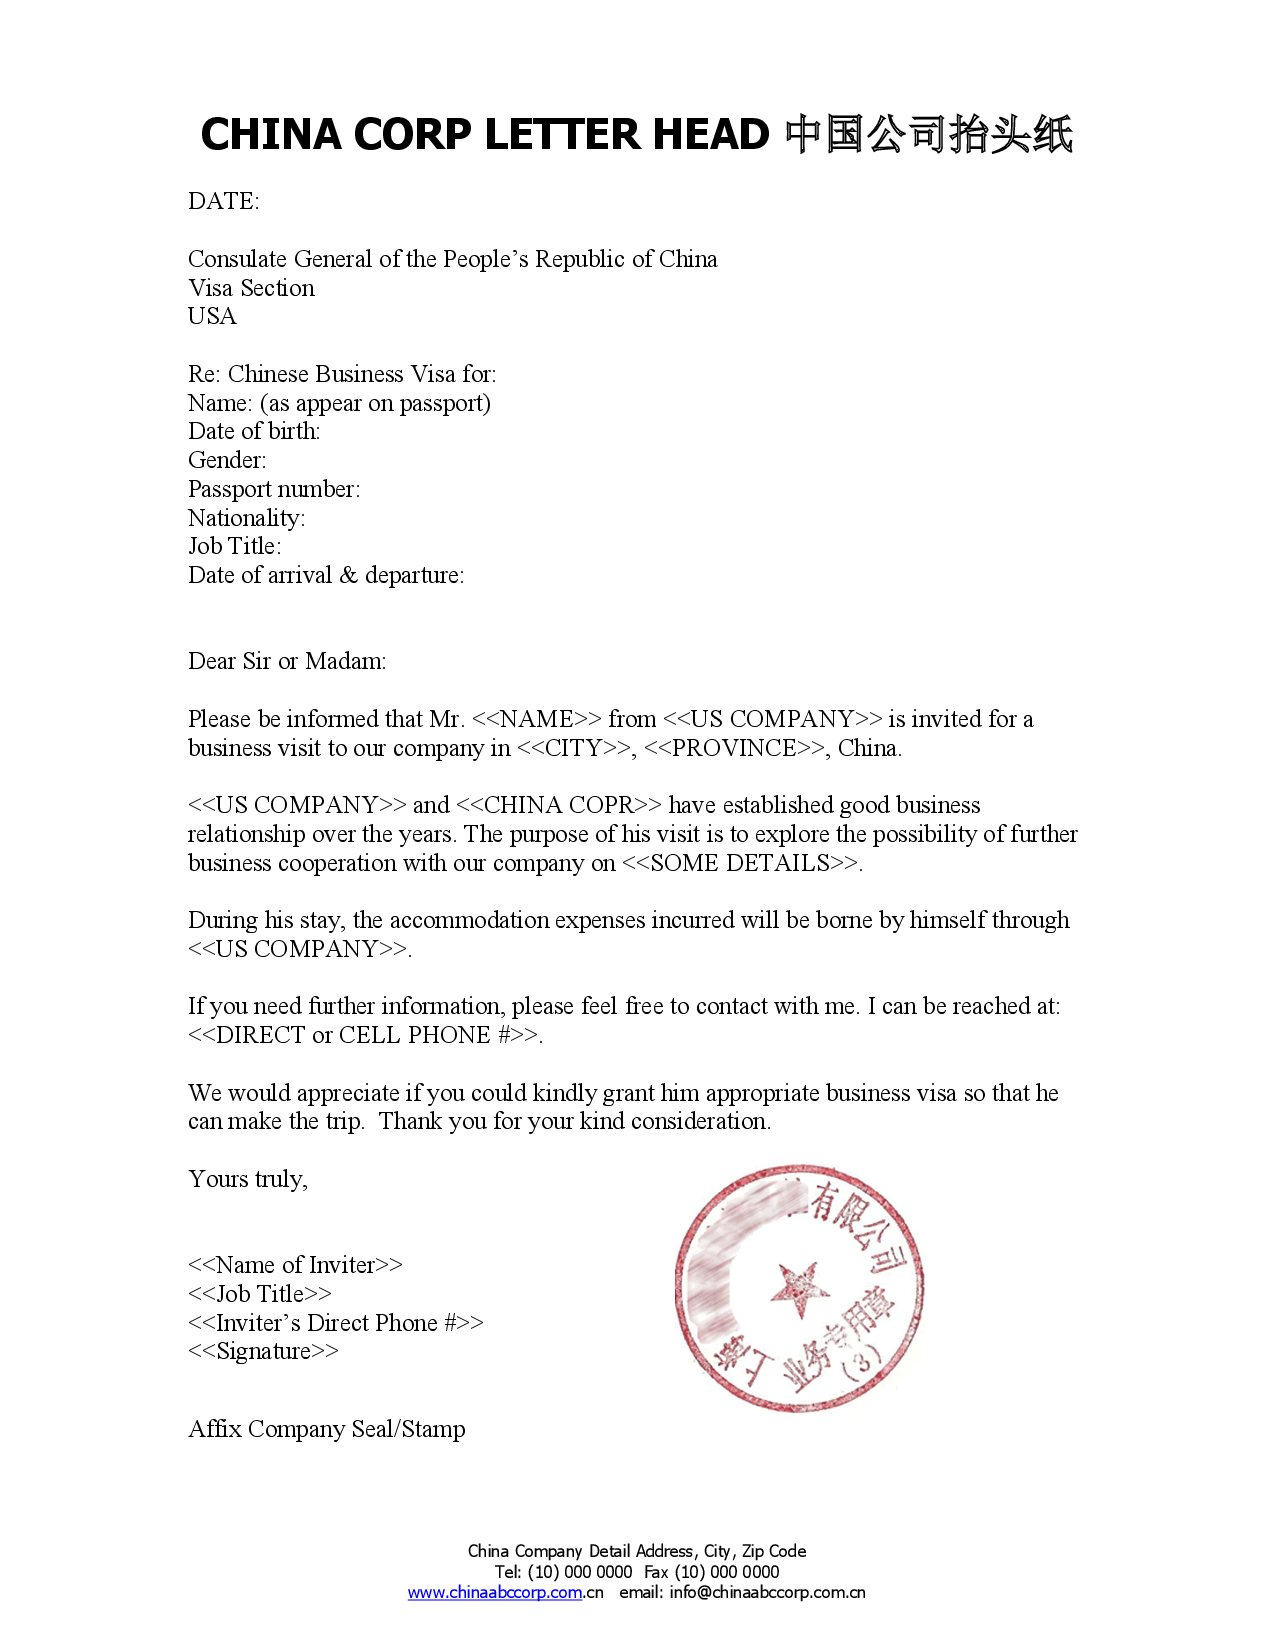 Format invitation letter for business visa to china for Consul example